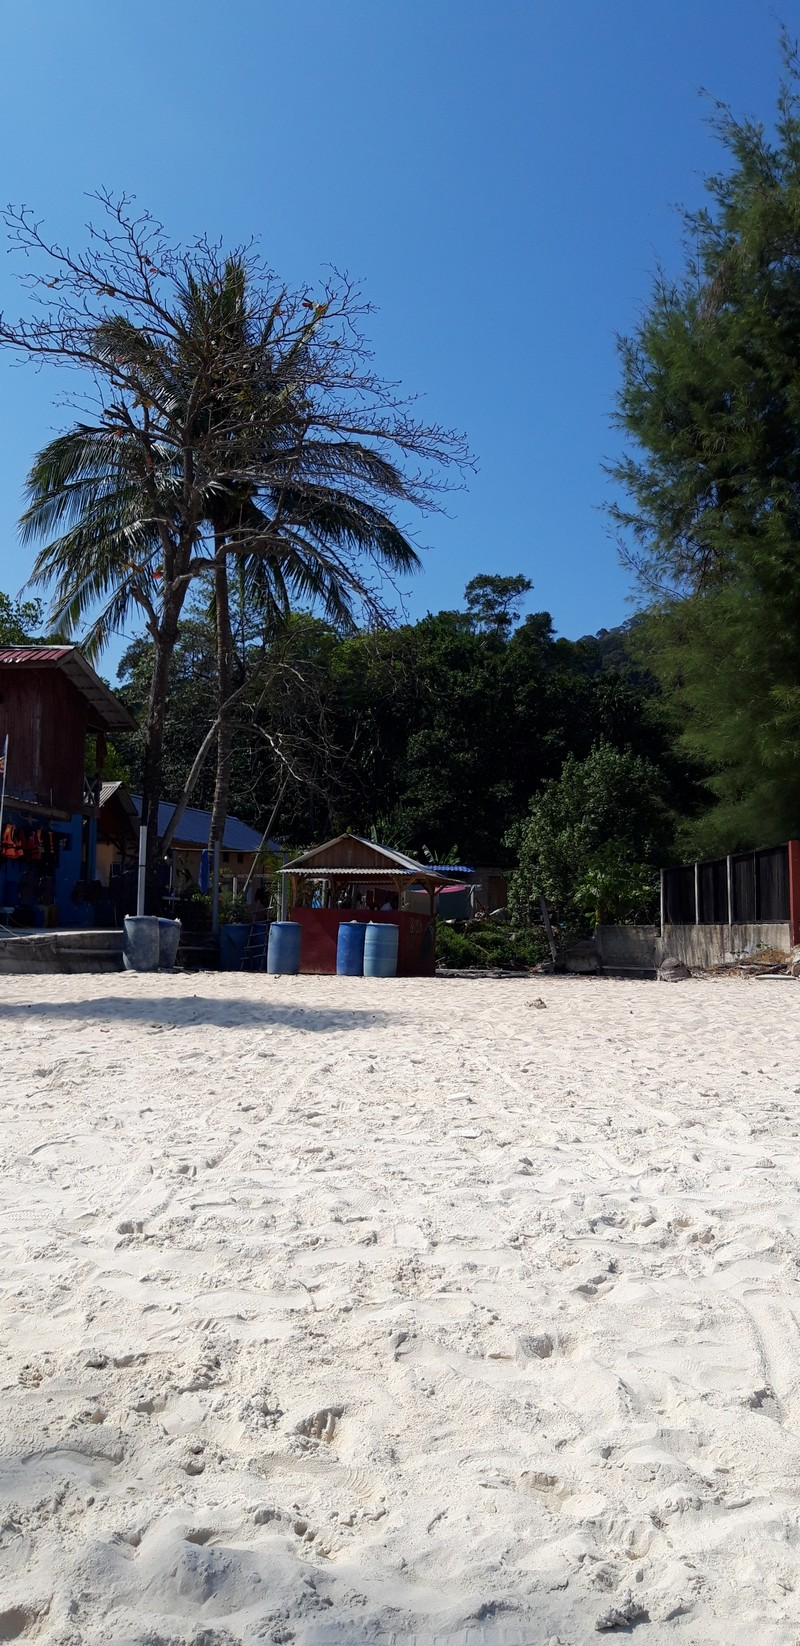 Jungle treks in Perhentian Islands are worthy and will connect you to other beaches on the island. I was in Flora Bay, a non-touristy spot.